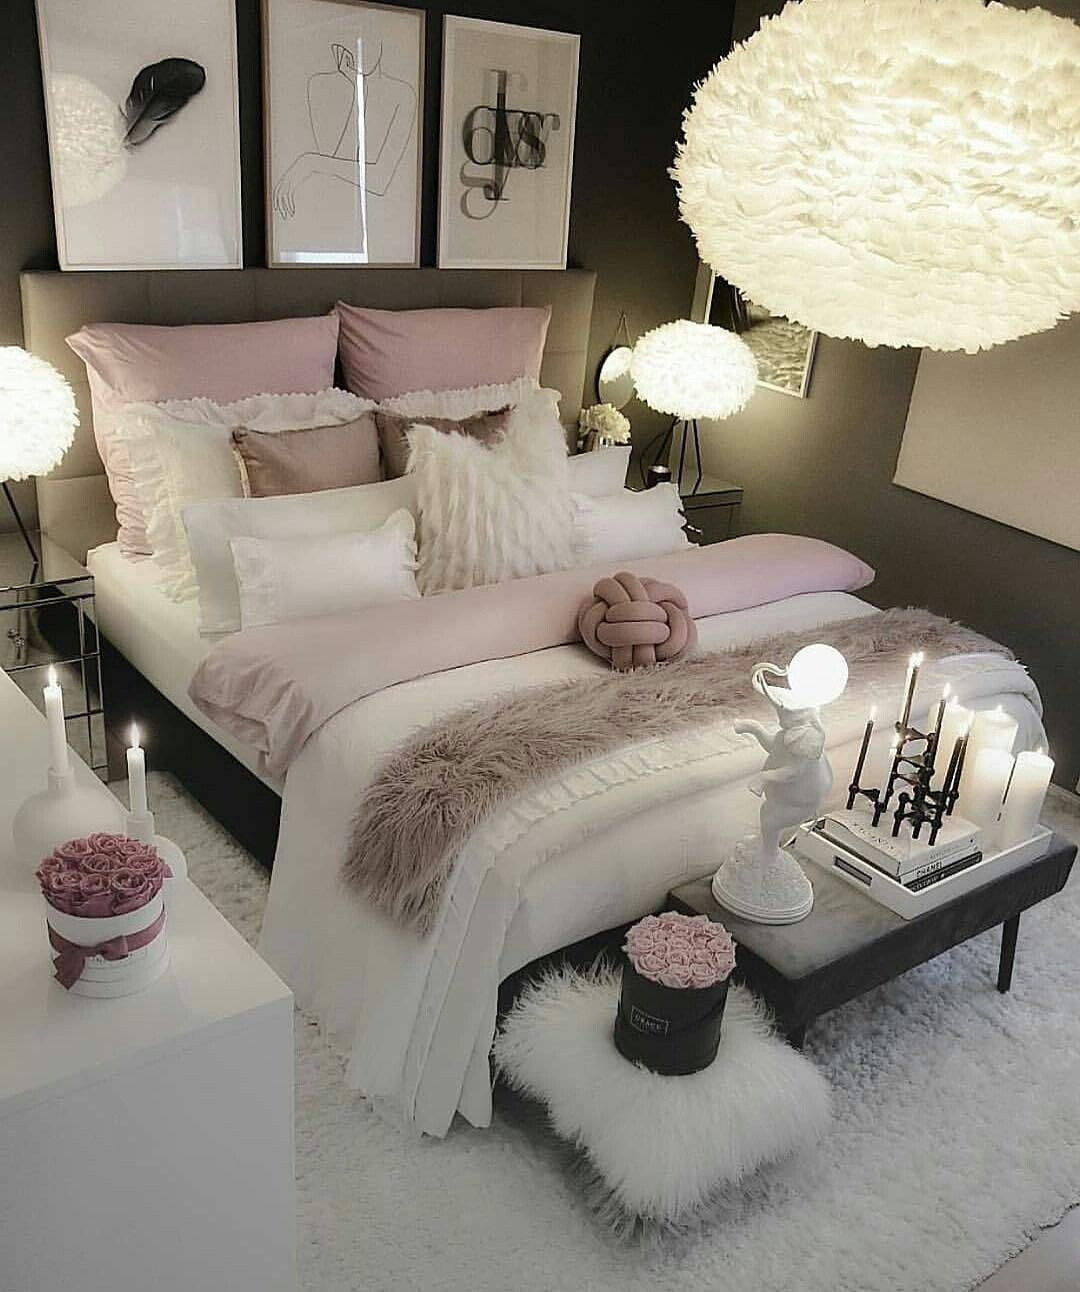 inspiring country chic bedroom decorating ideas | Bedroom Inspiration | Doses of Luxury - Pursue your dreams ...